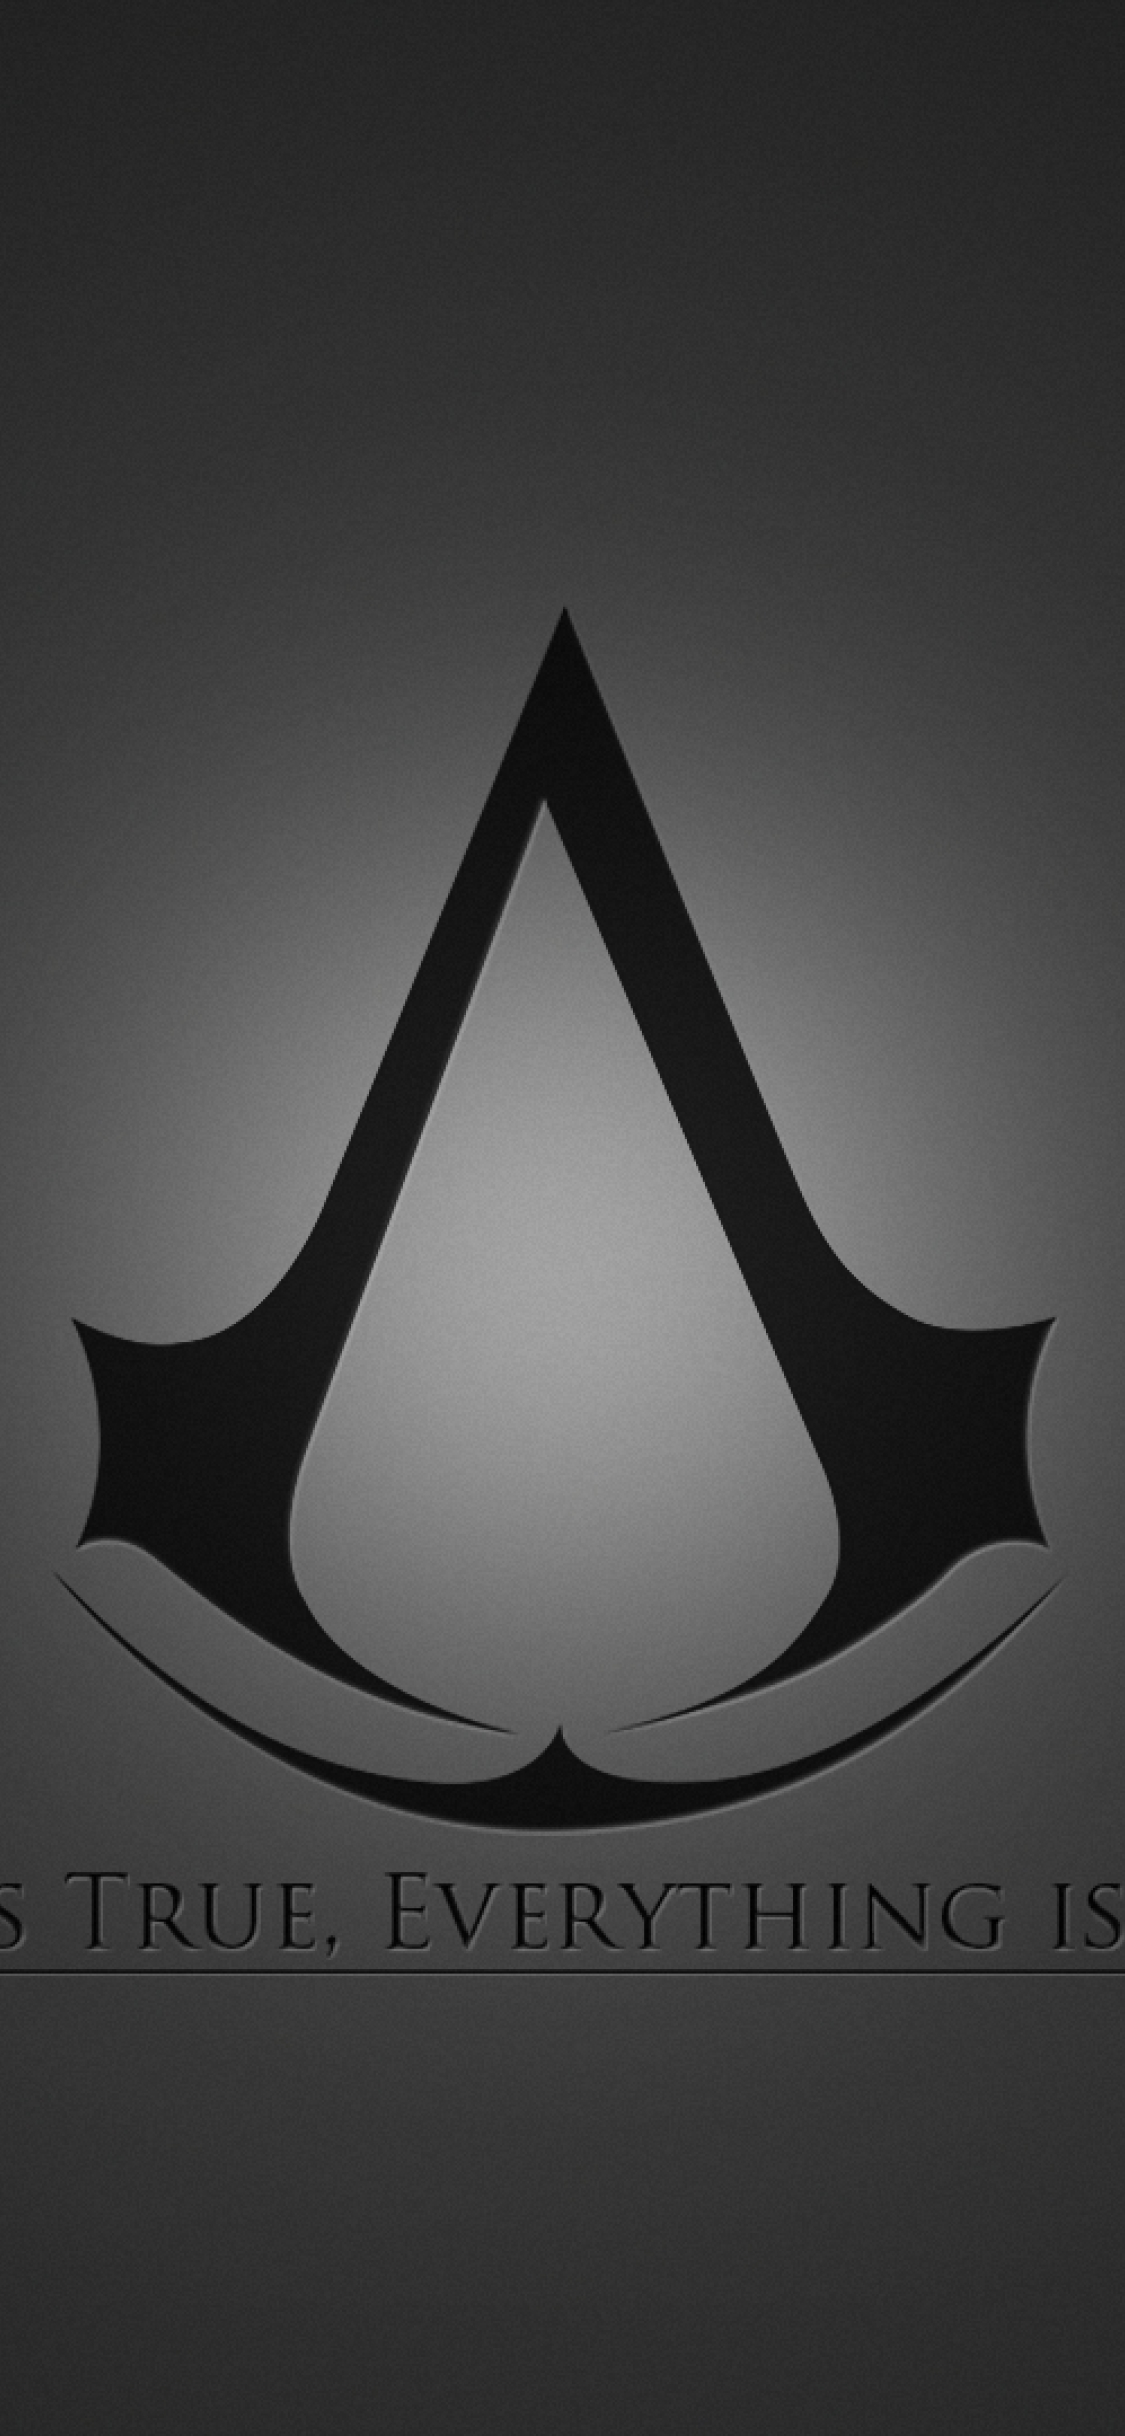 1125x2436 Assassins Creed Emblem Quote Iphone Xs Iphone 10 Iphone X Wallpaper Hd Games 4k Wallpapers Images